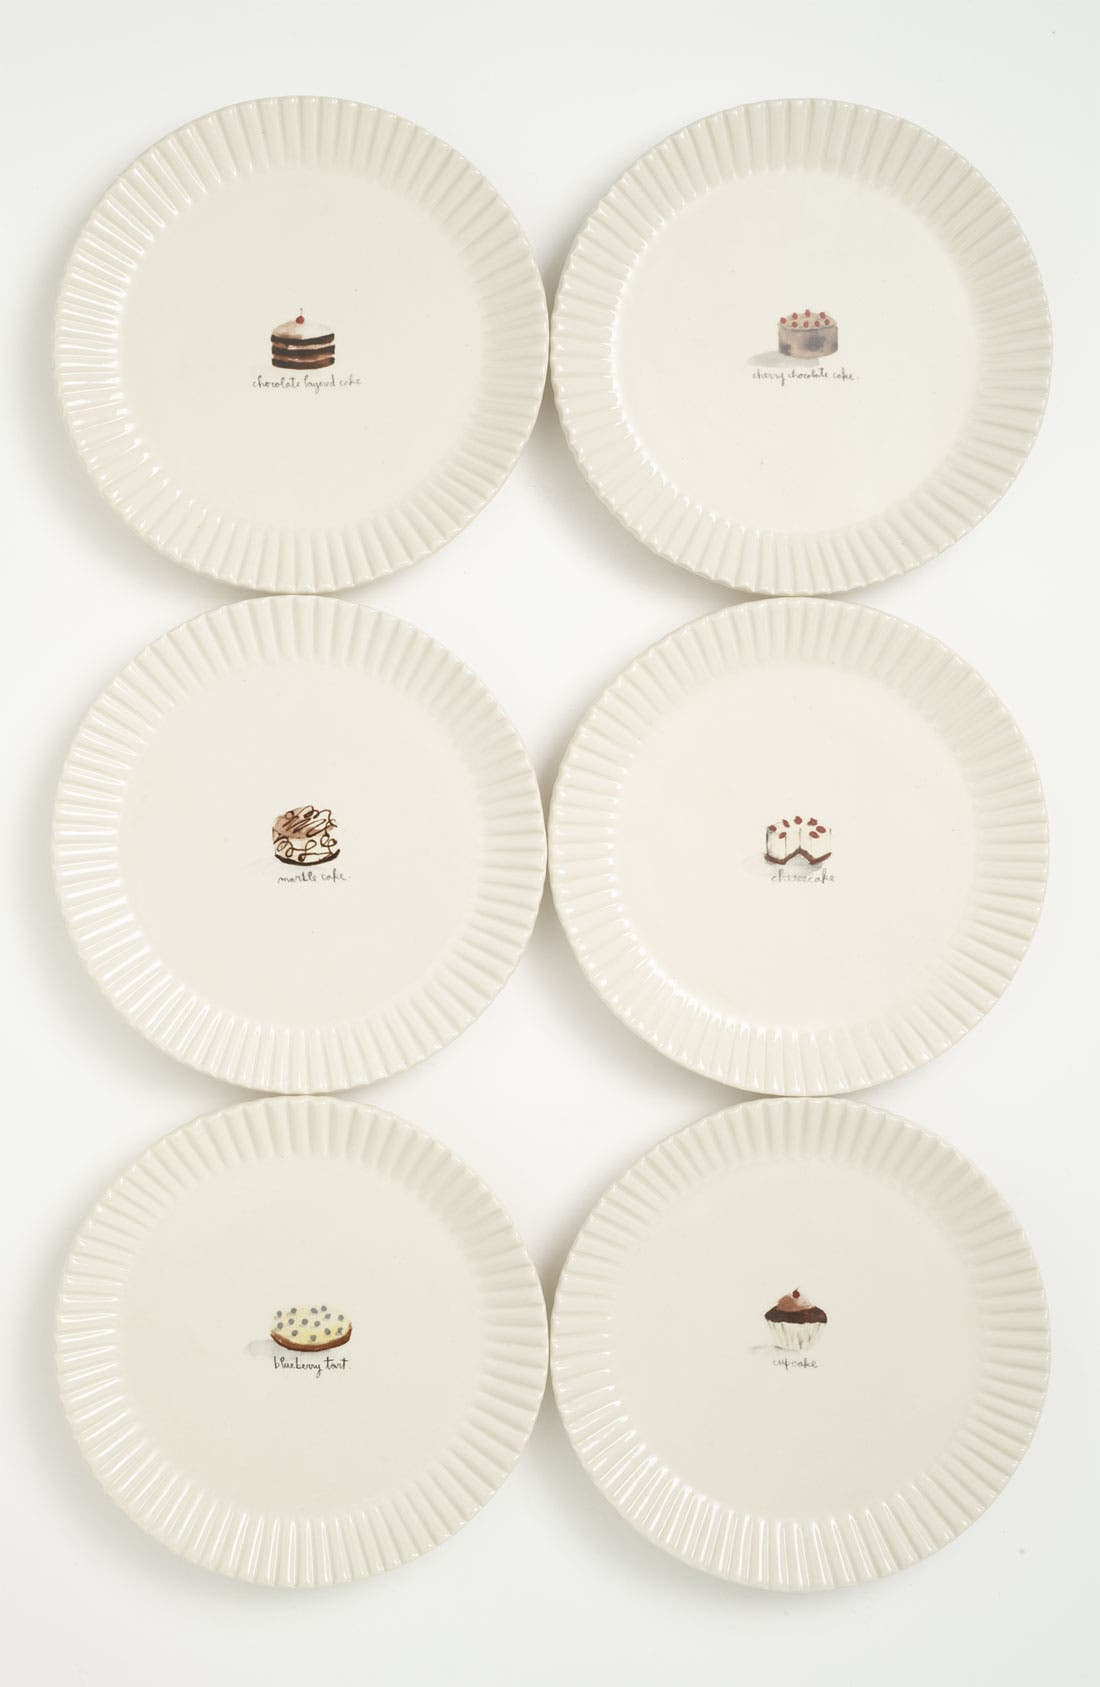 Alternate Image 1 Selected - Rae Dunn by Magenta Dessert Plates (Set of 6)